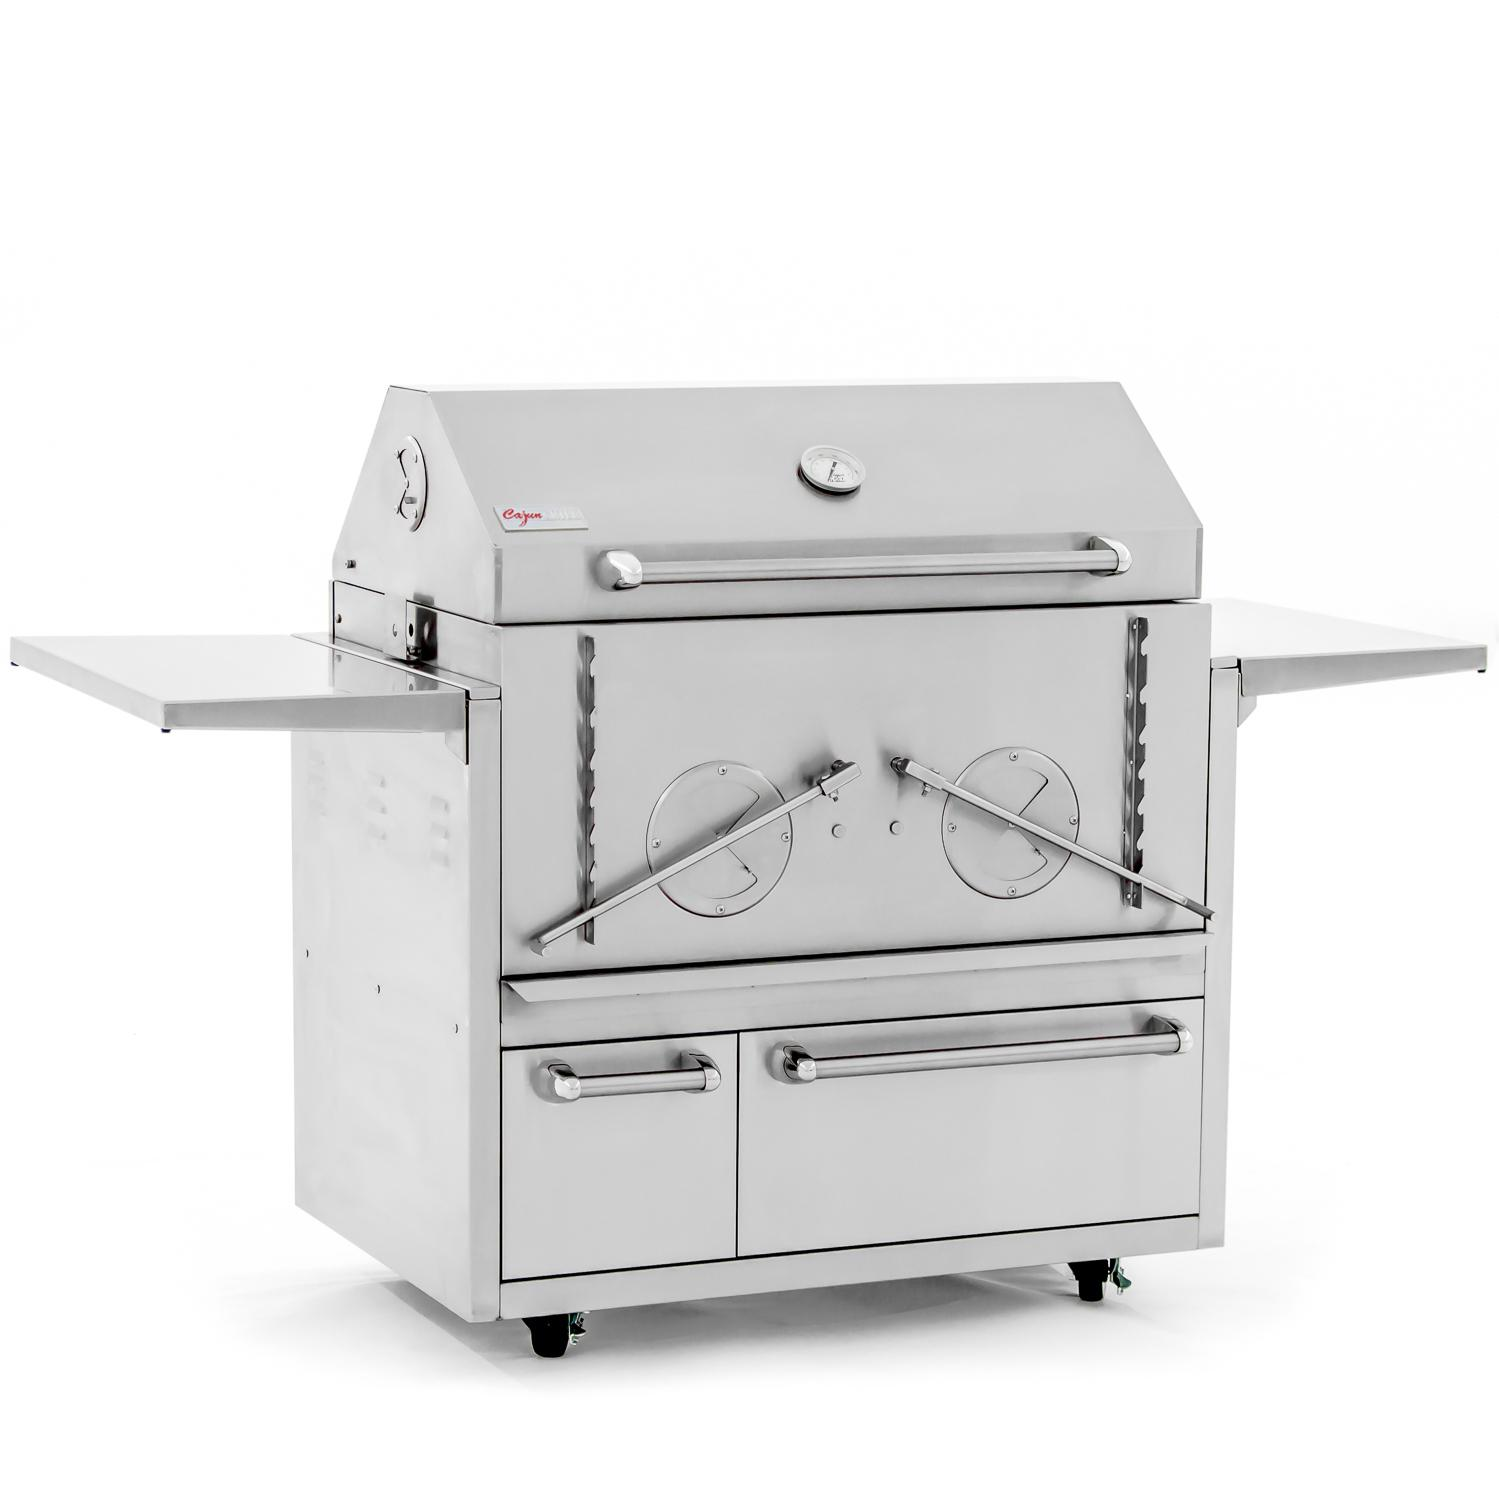 """Cajun Grill Preaux 36"""" Stainless Steel Charcoal Grill - Pgi-900 + 900cart"""